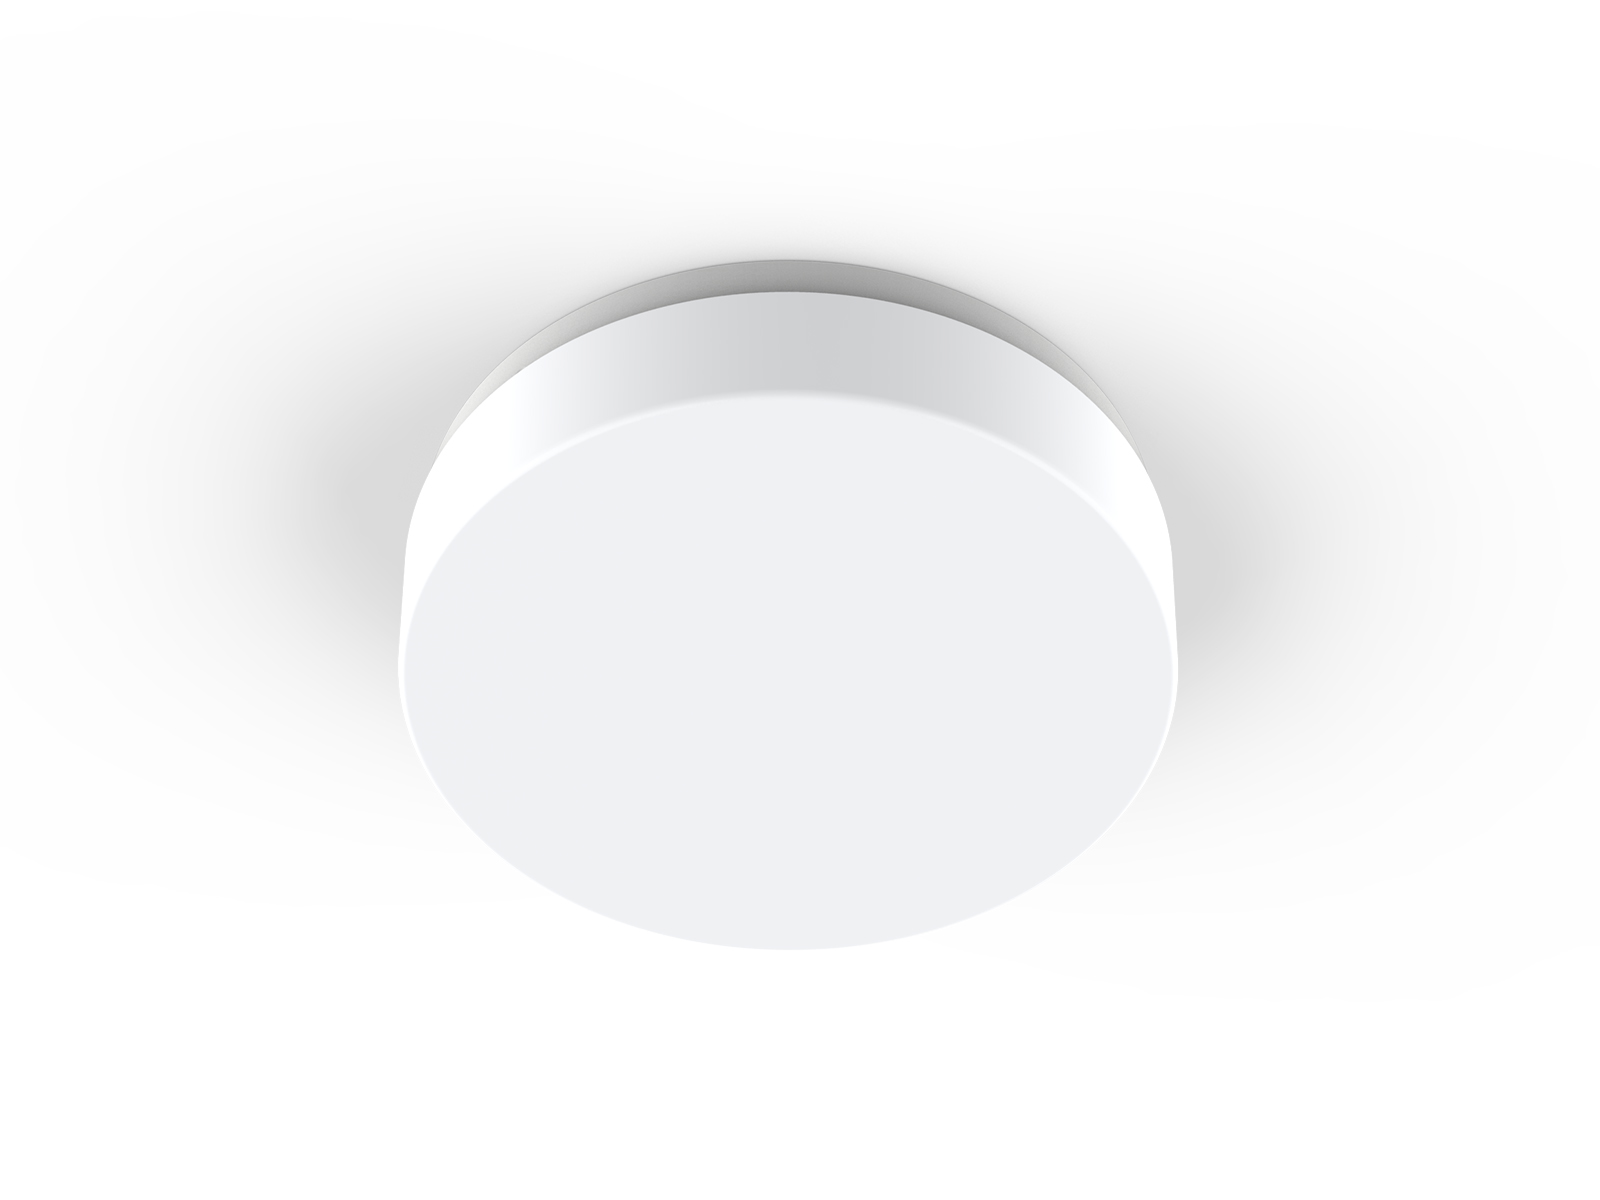 AL04B 1 Surface Mounted Ceiling Light